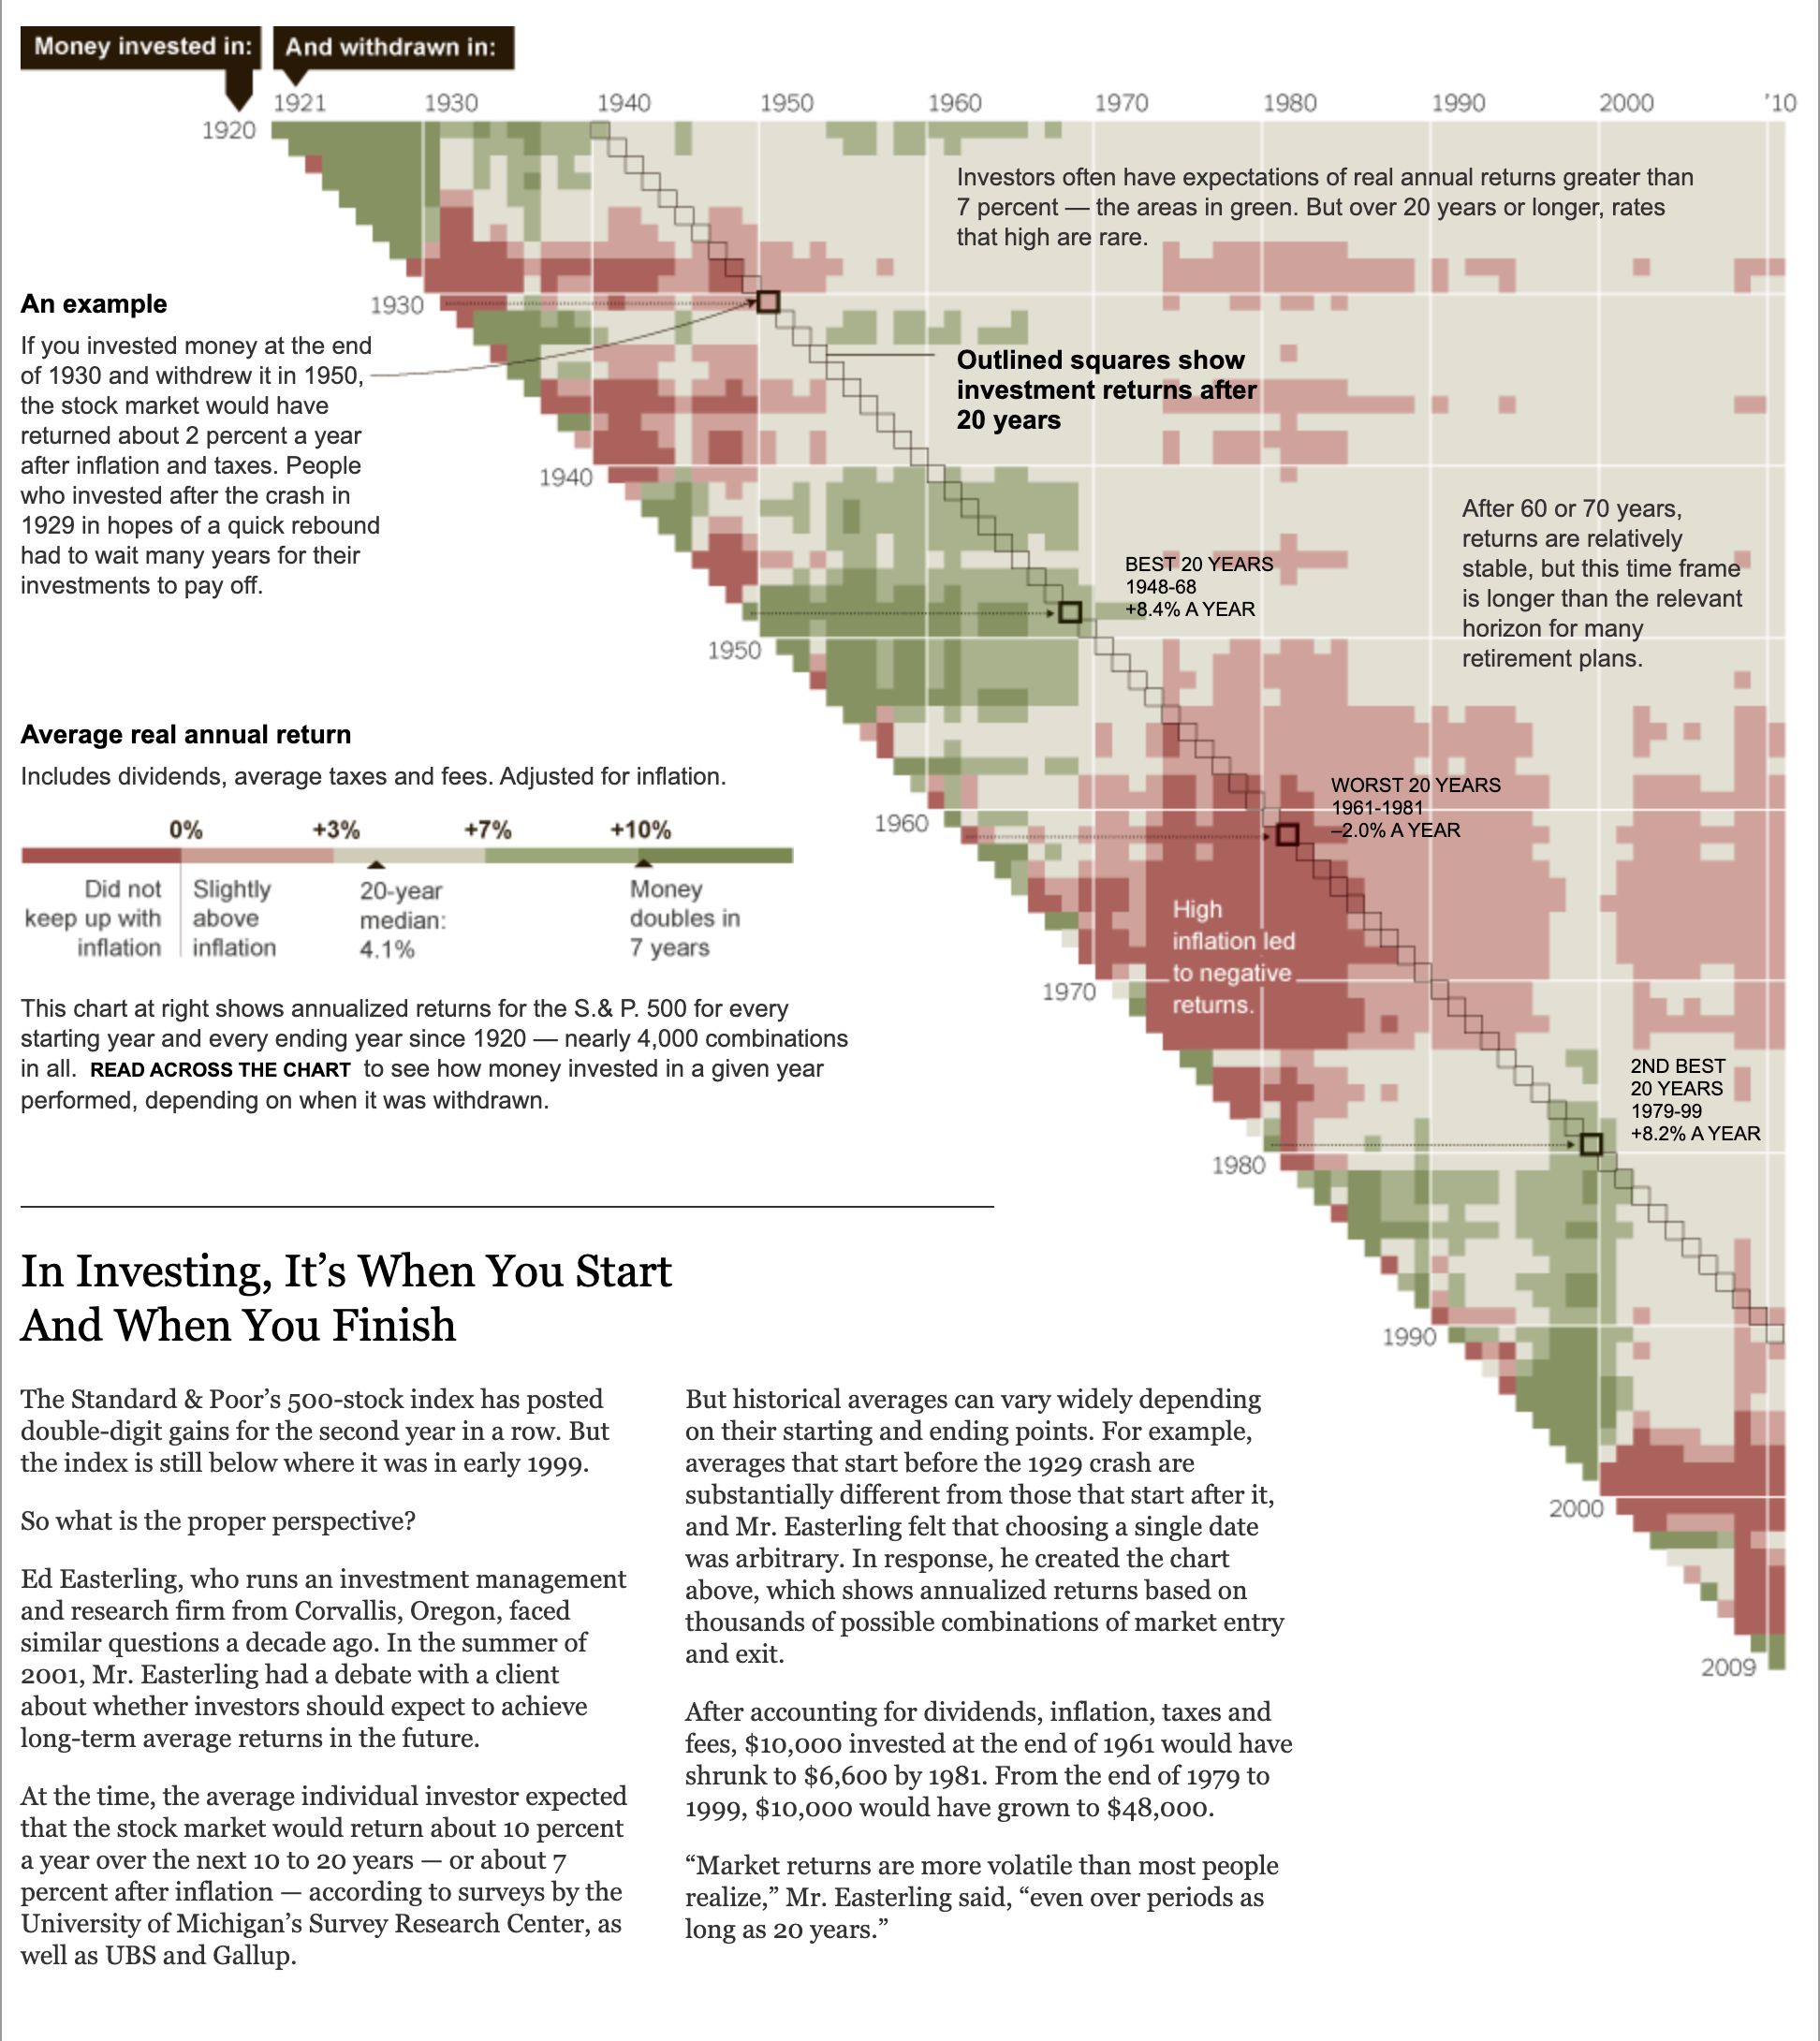 NY Times Investing timing